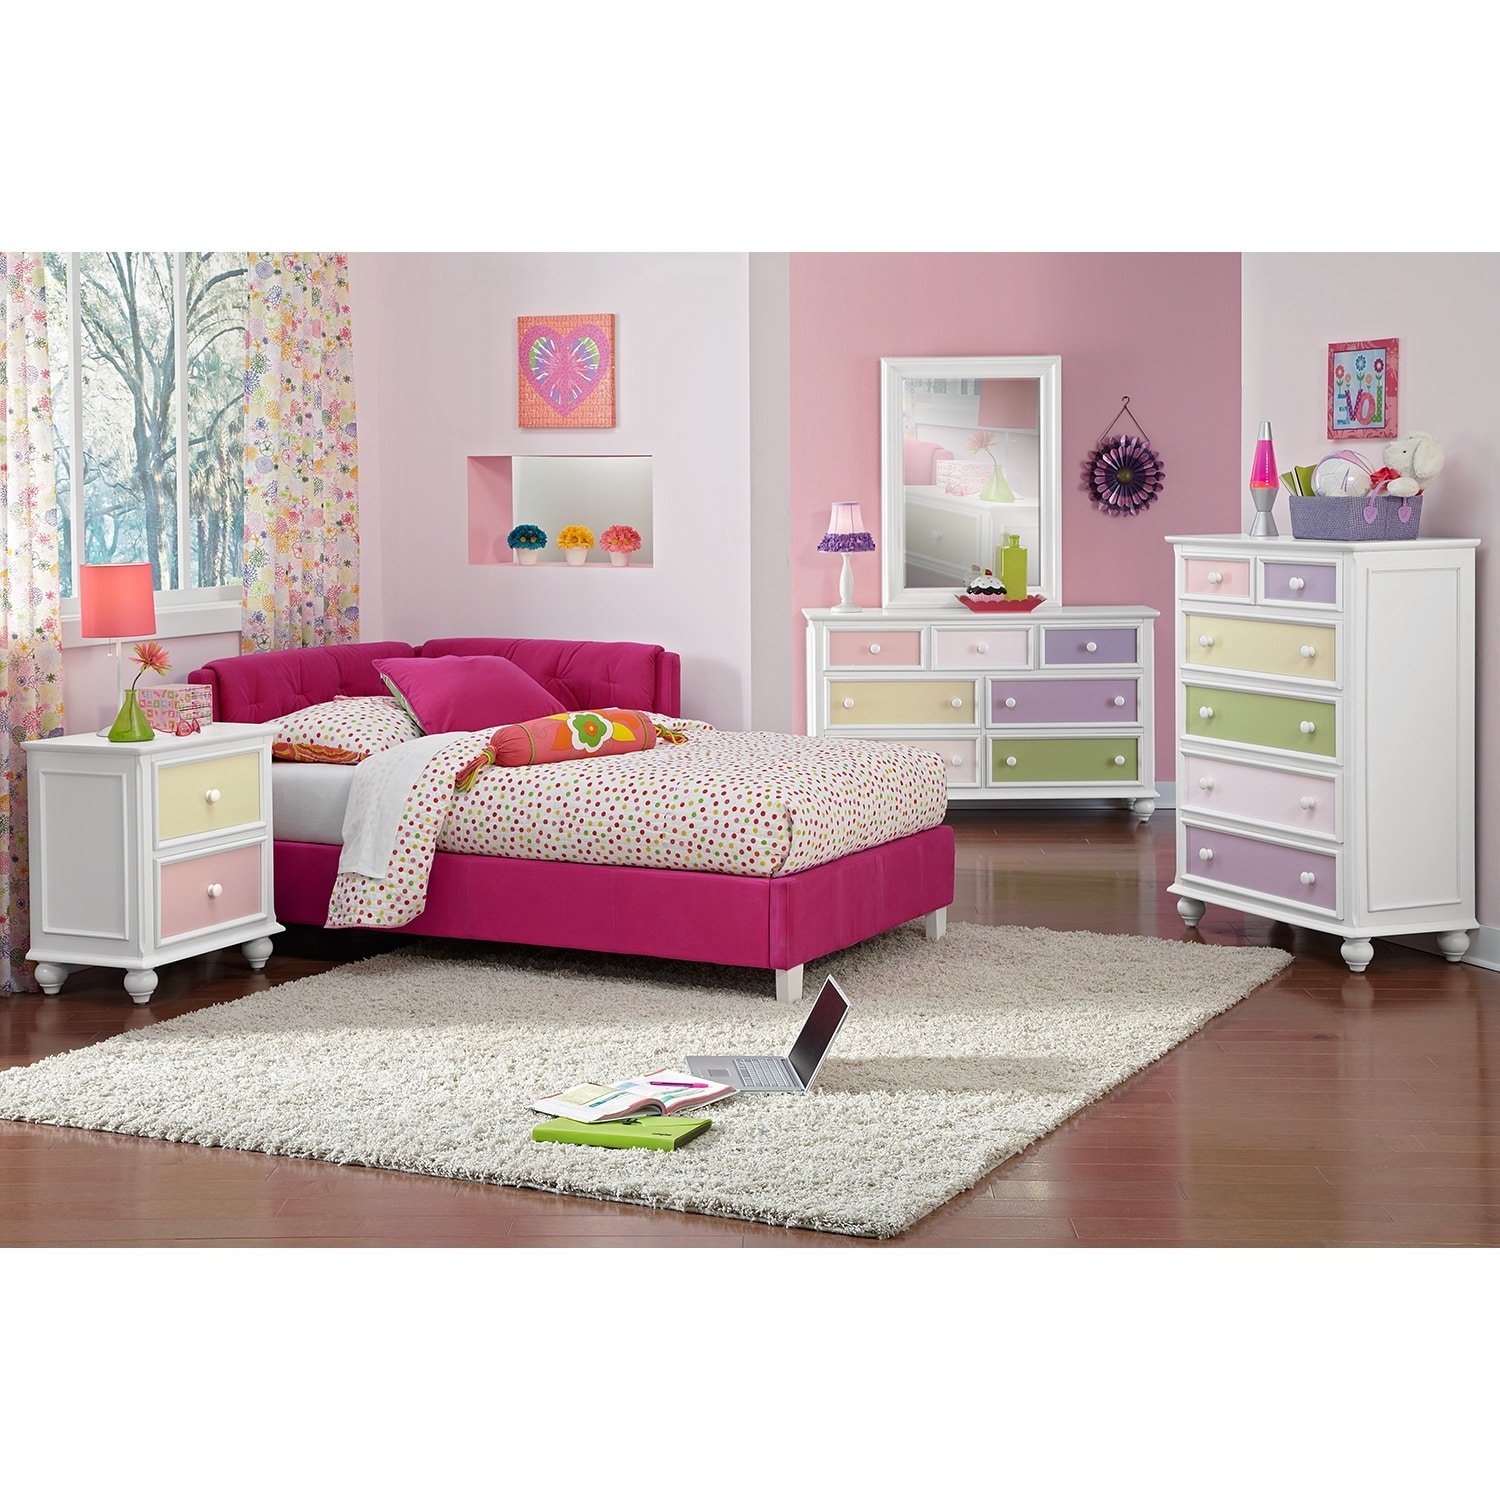 Jordan full corner bed pink value city furniture for Complete bedroom sets with mattress